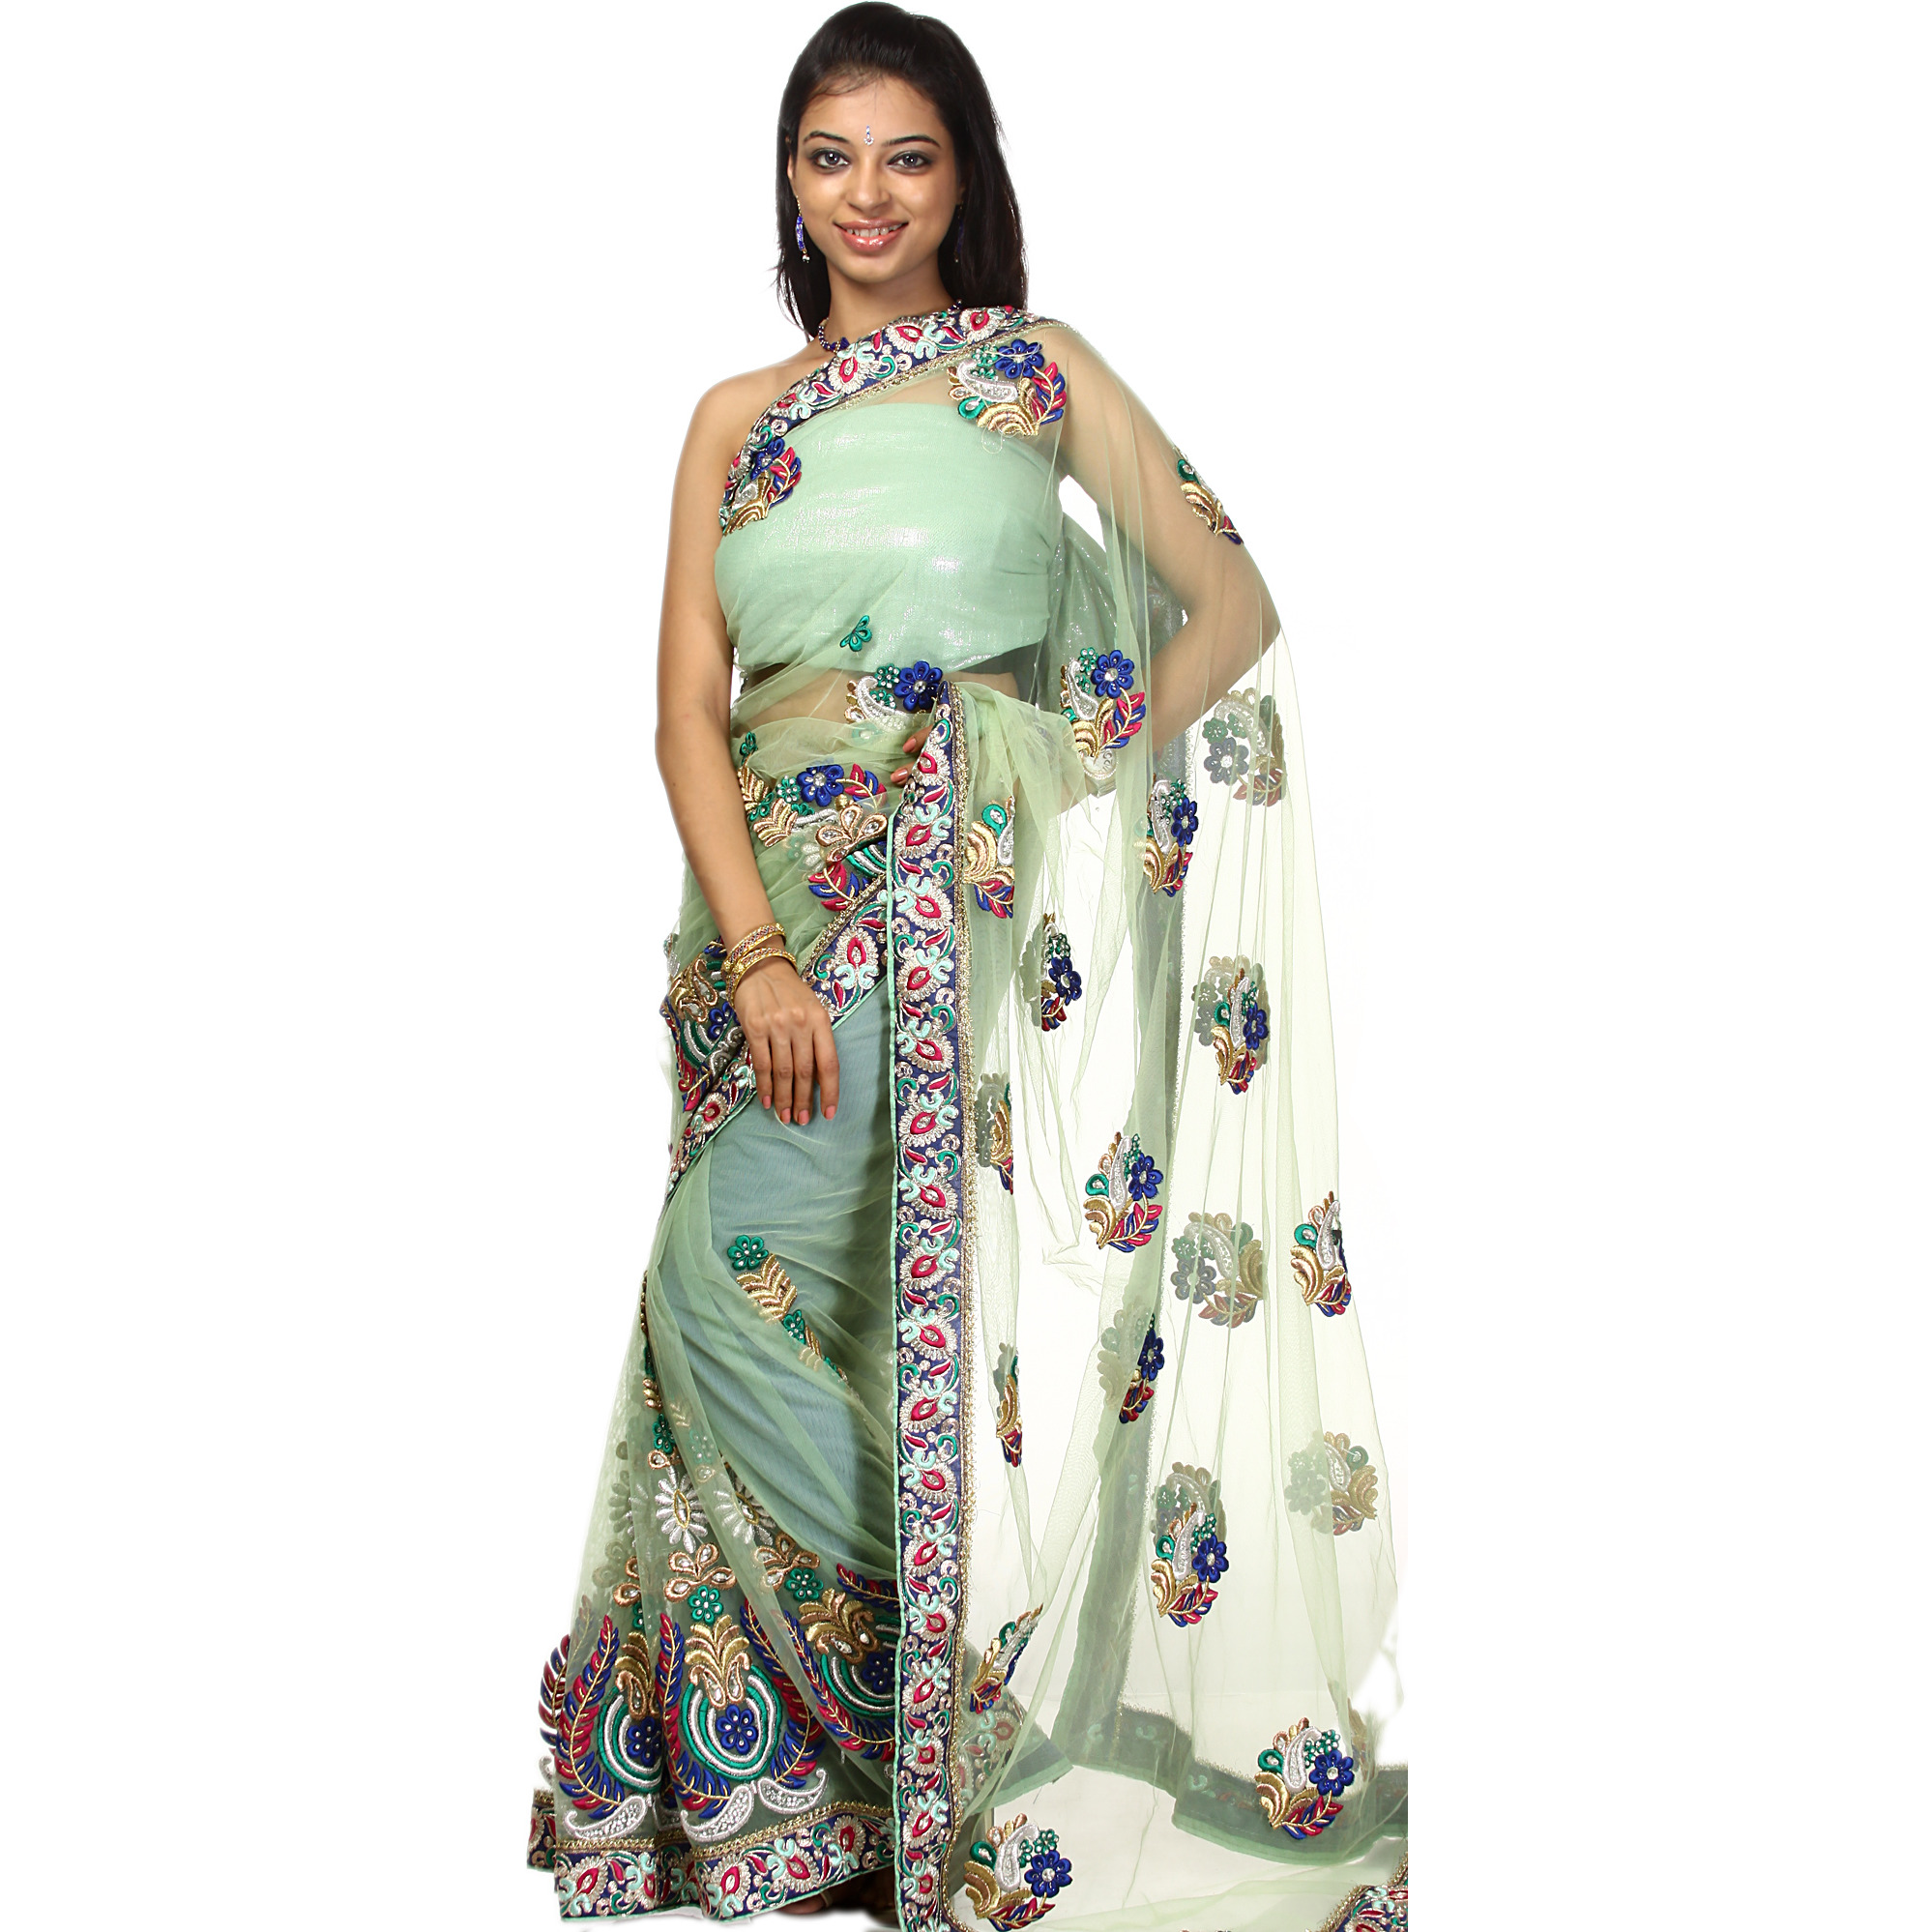 Zephyr-Green Designer Sari with Dense Crewel Embroidery and Zardozi Patch Border